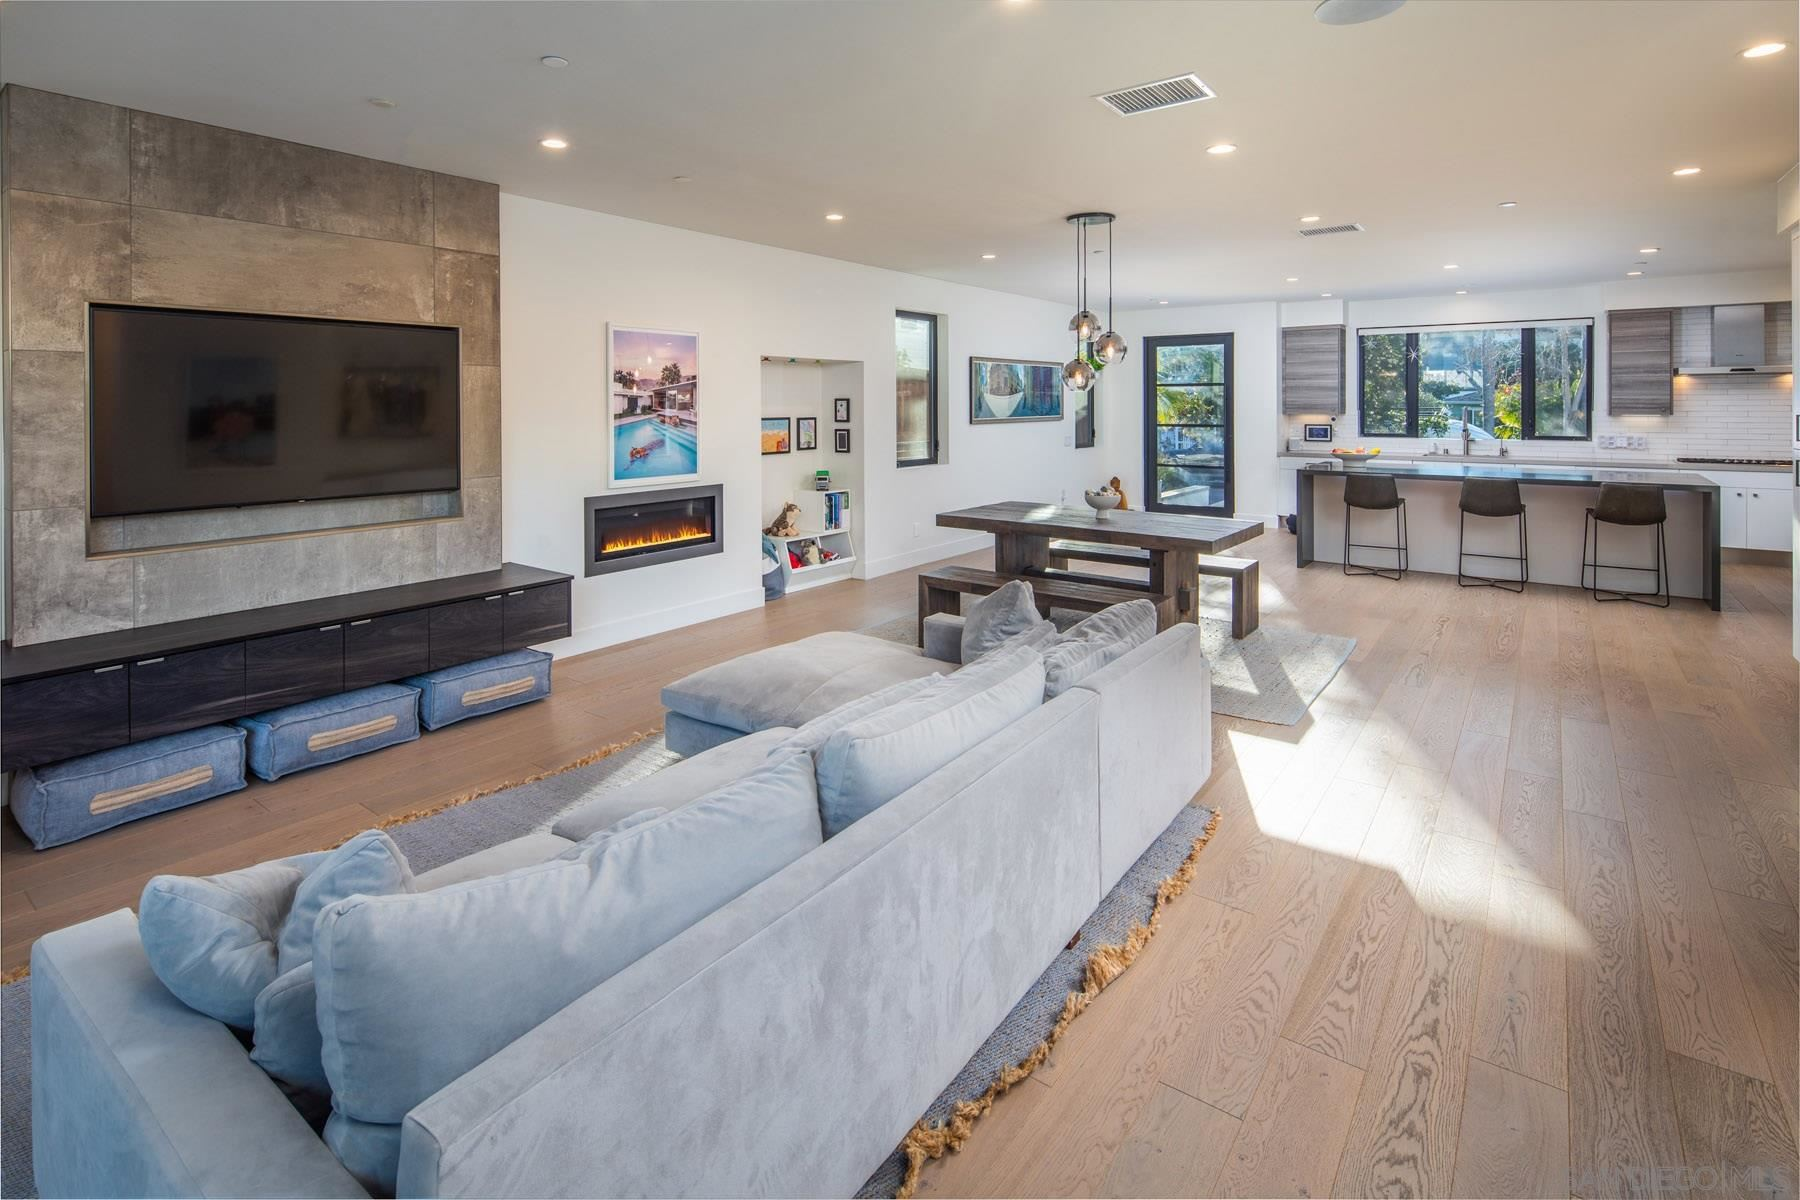 Photo of 307 La Mesa Ave, Encinitas, CA 92024 (MLS # 200054571)